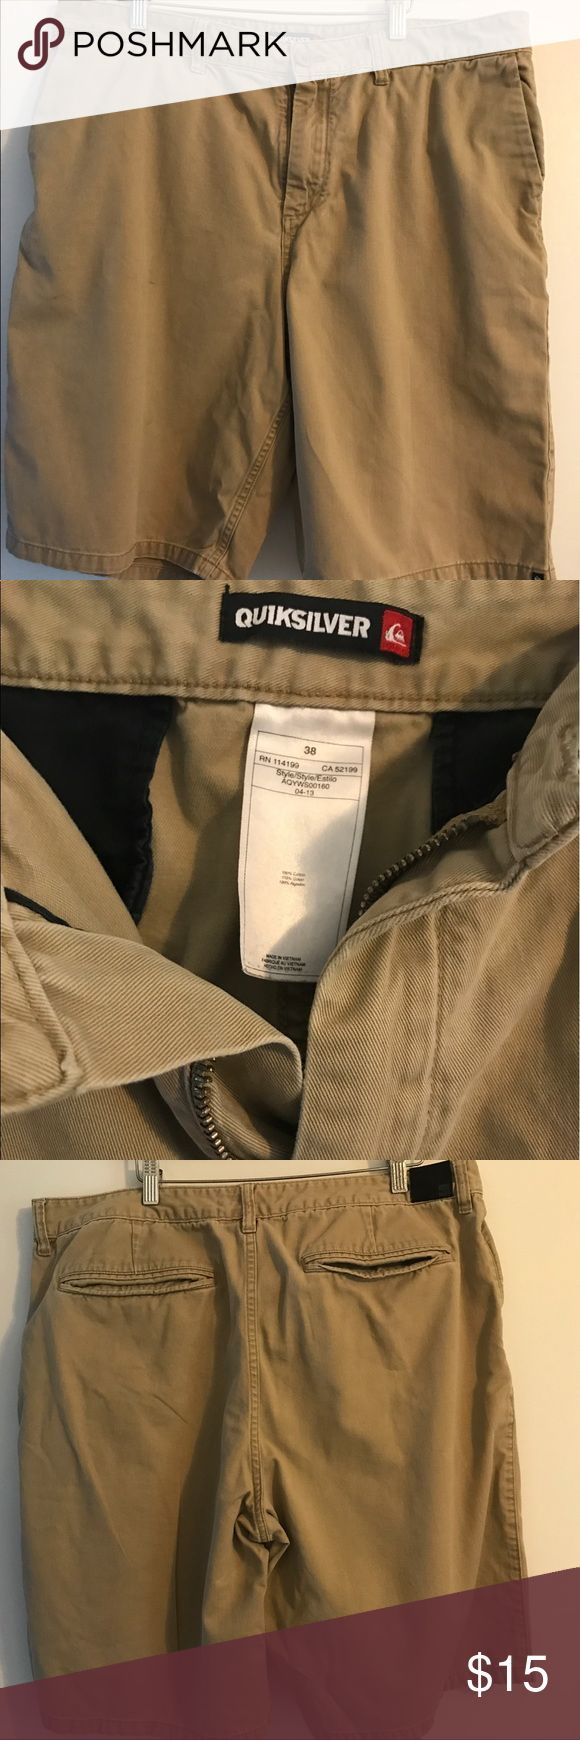 Men's Khaki Shorts Quiksilver men's shorts! A staple in every mans wardrobe! Used but still in good condition...... tons of life still left! Quiksilver Shorts Flat Front